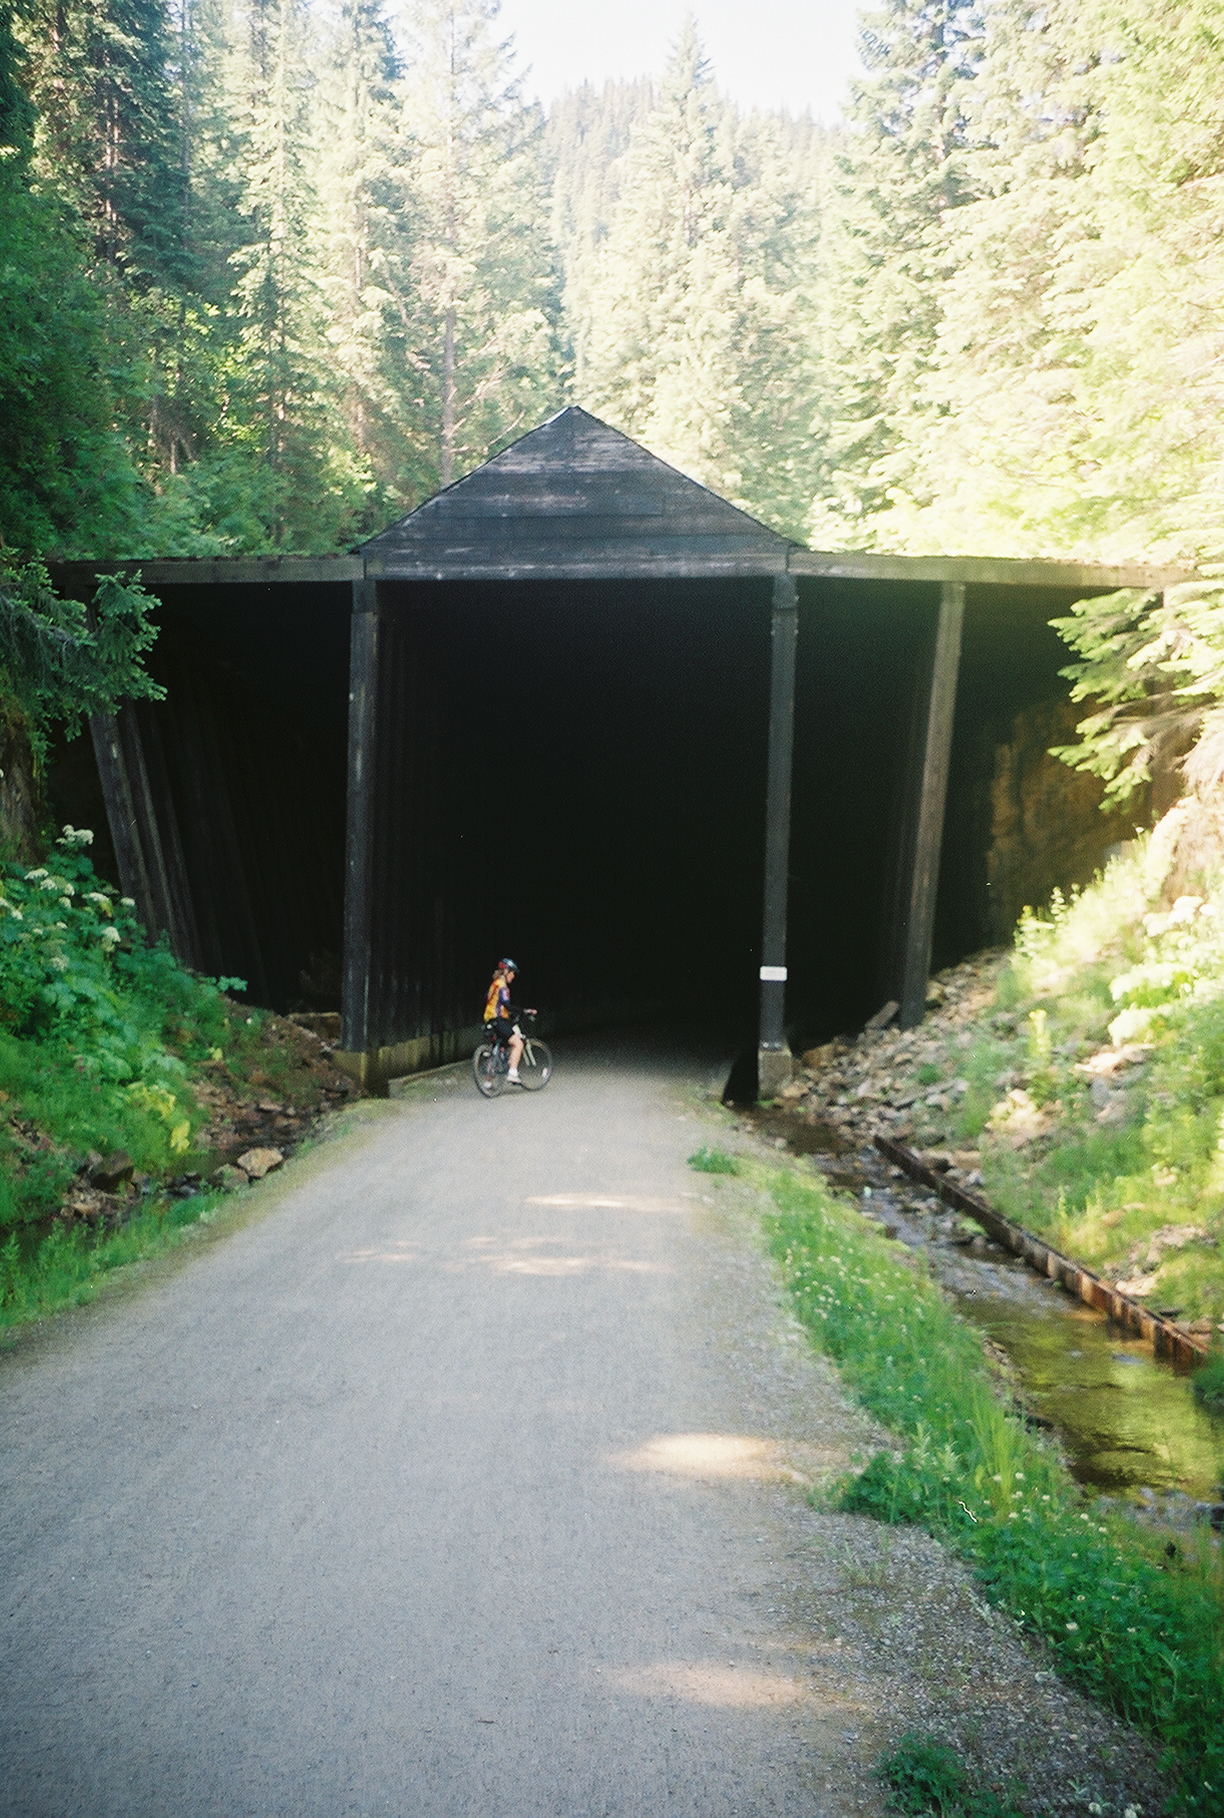 Diane at a Tunnel Entrance